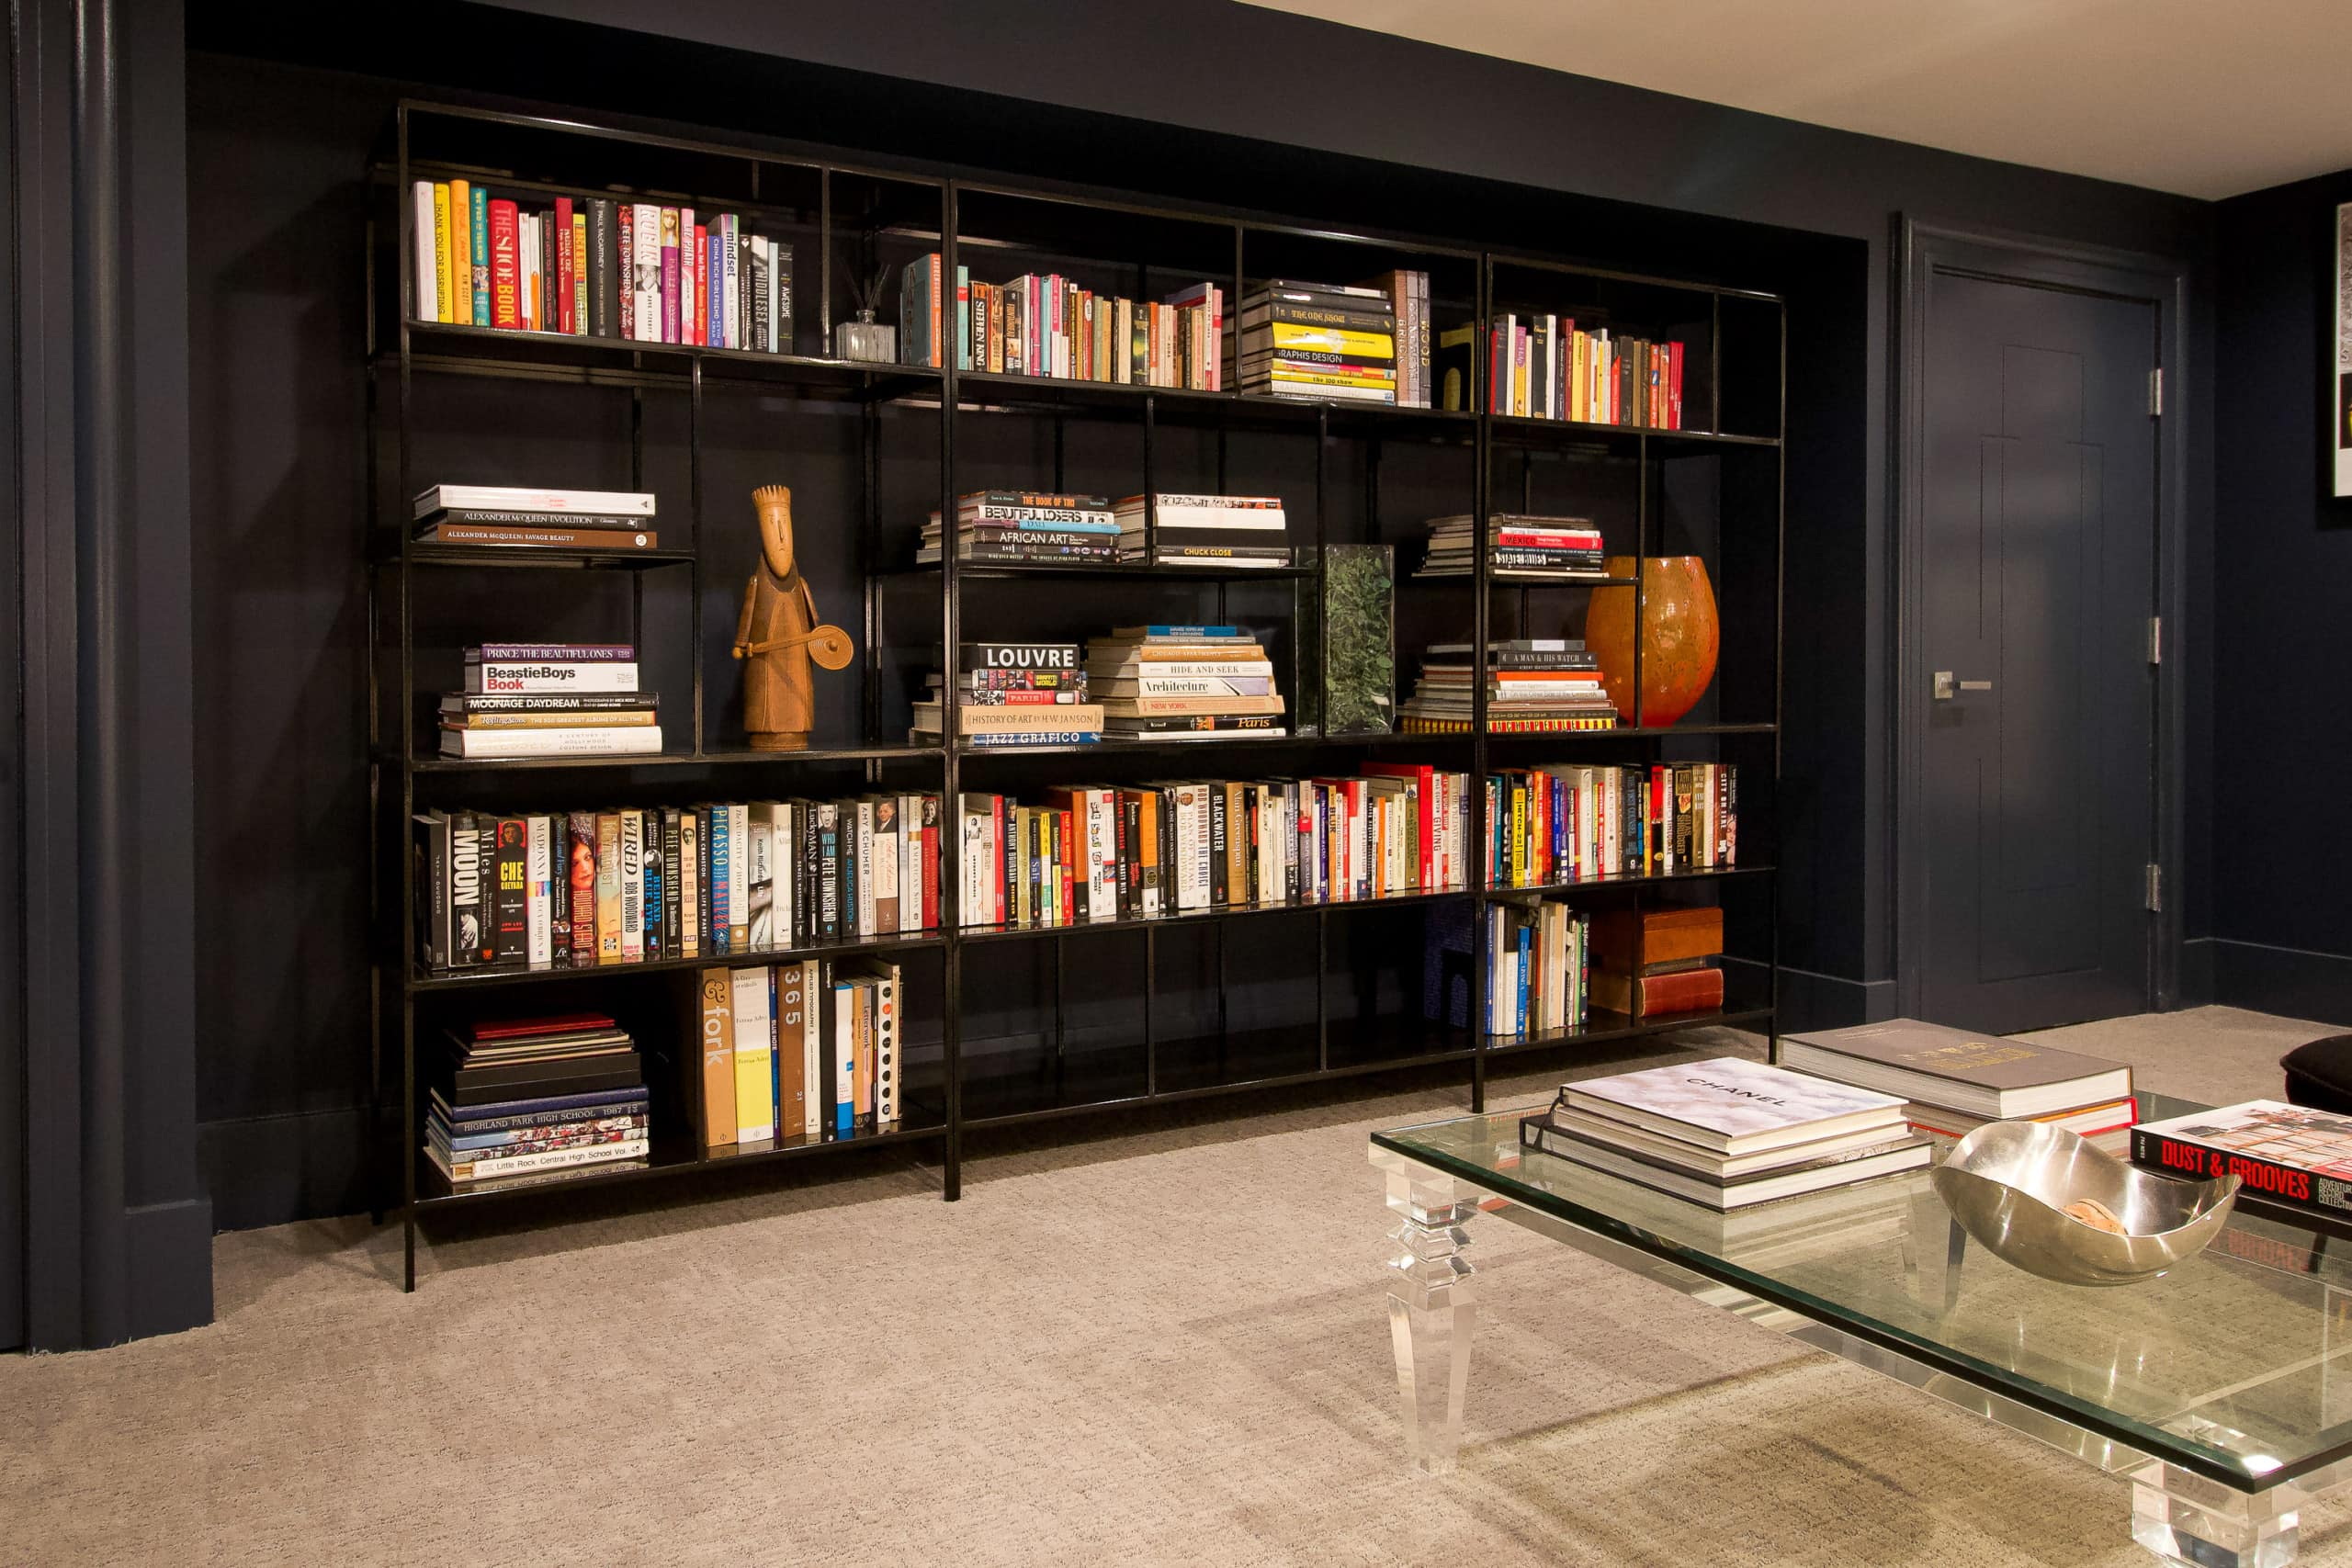 Bookshelves with colorful books